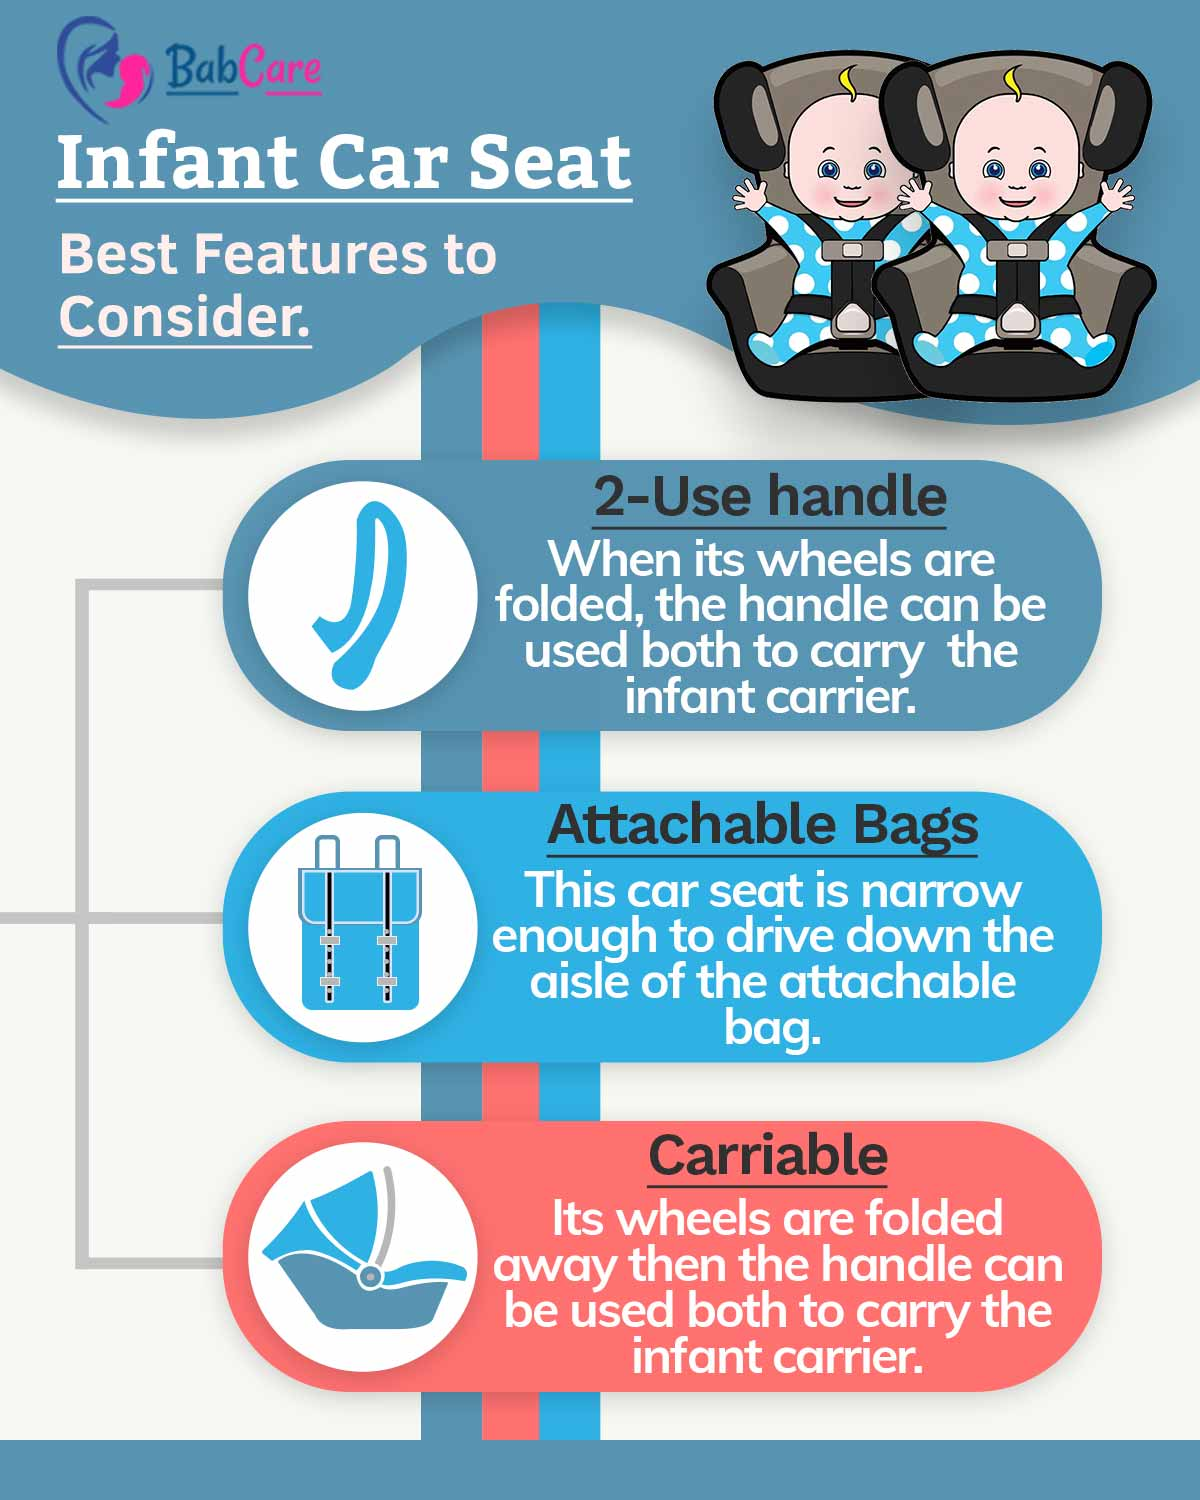 Infographic of Doona infant car seat performance use handle, attachable bags and carriable